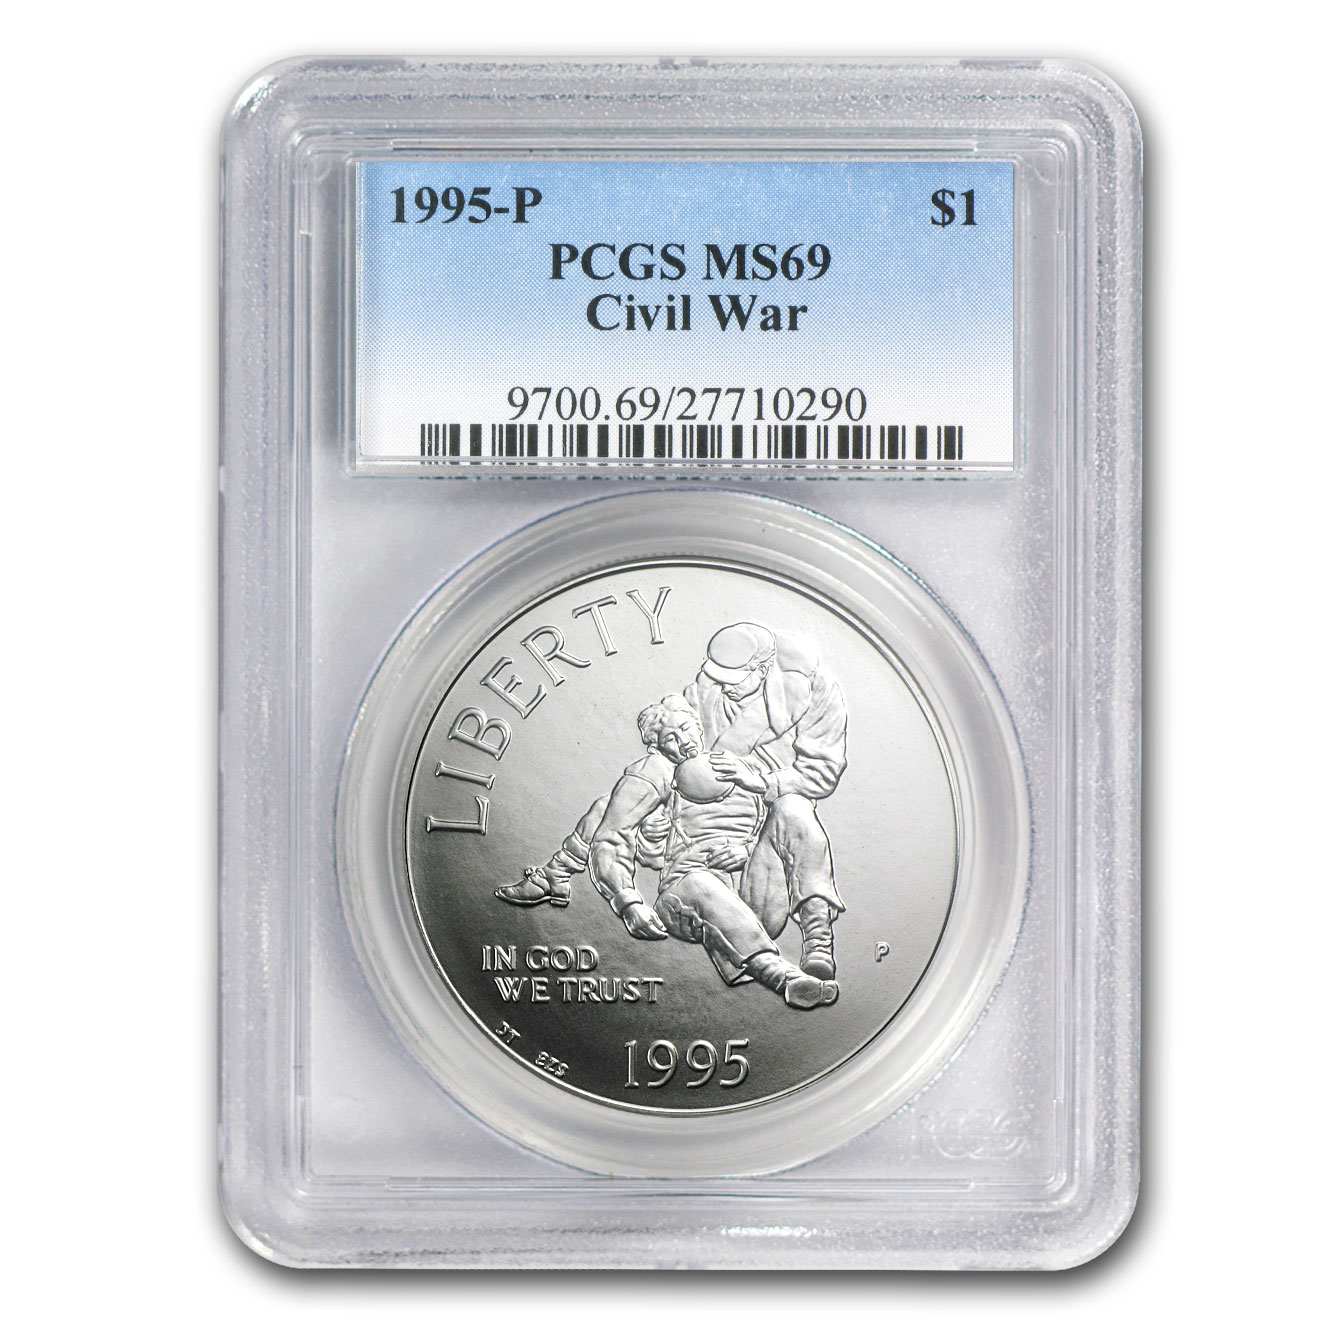 1995-P Civil War $1 Silver Commemorative - MS-69 PCGS